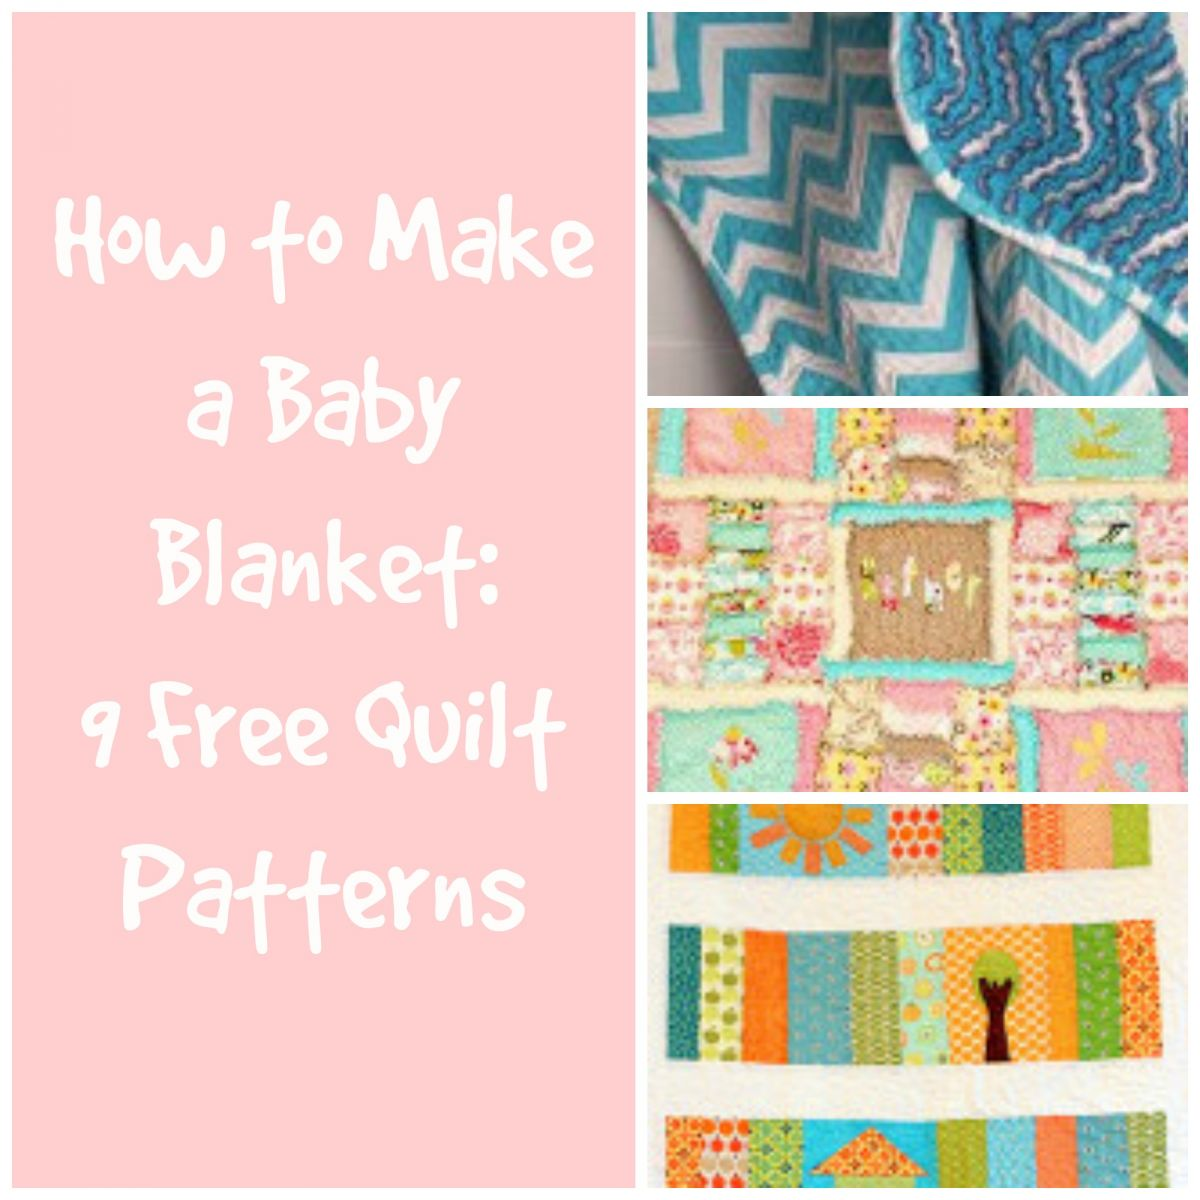 How To Make A Baby Blanket How To Make A Baby Blanket 9 Free Quilt Patterns